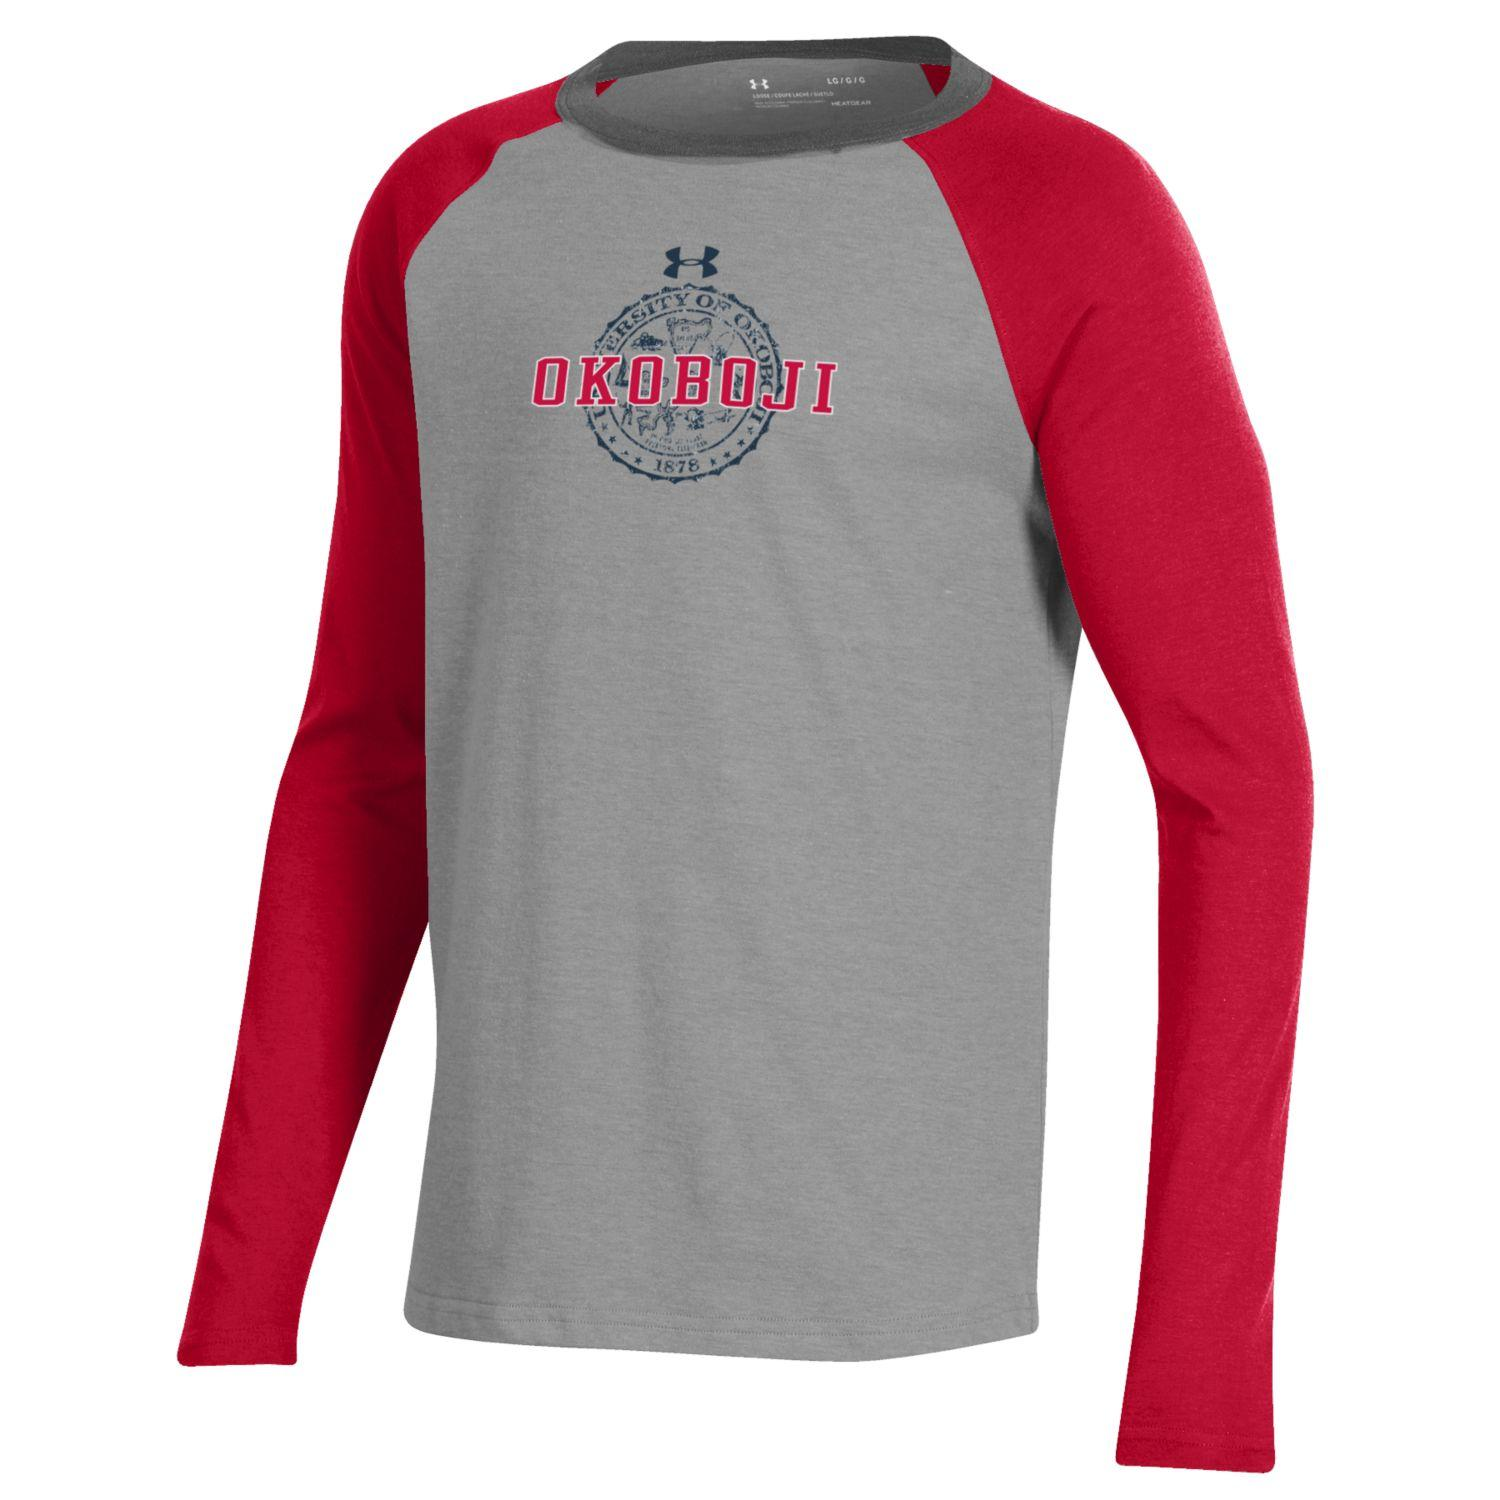 Okoboji Boys Tri-Color Performance Cotton Baseball Tee - Red